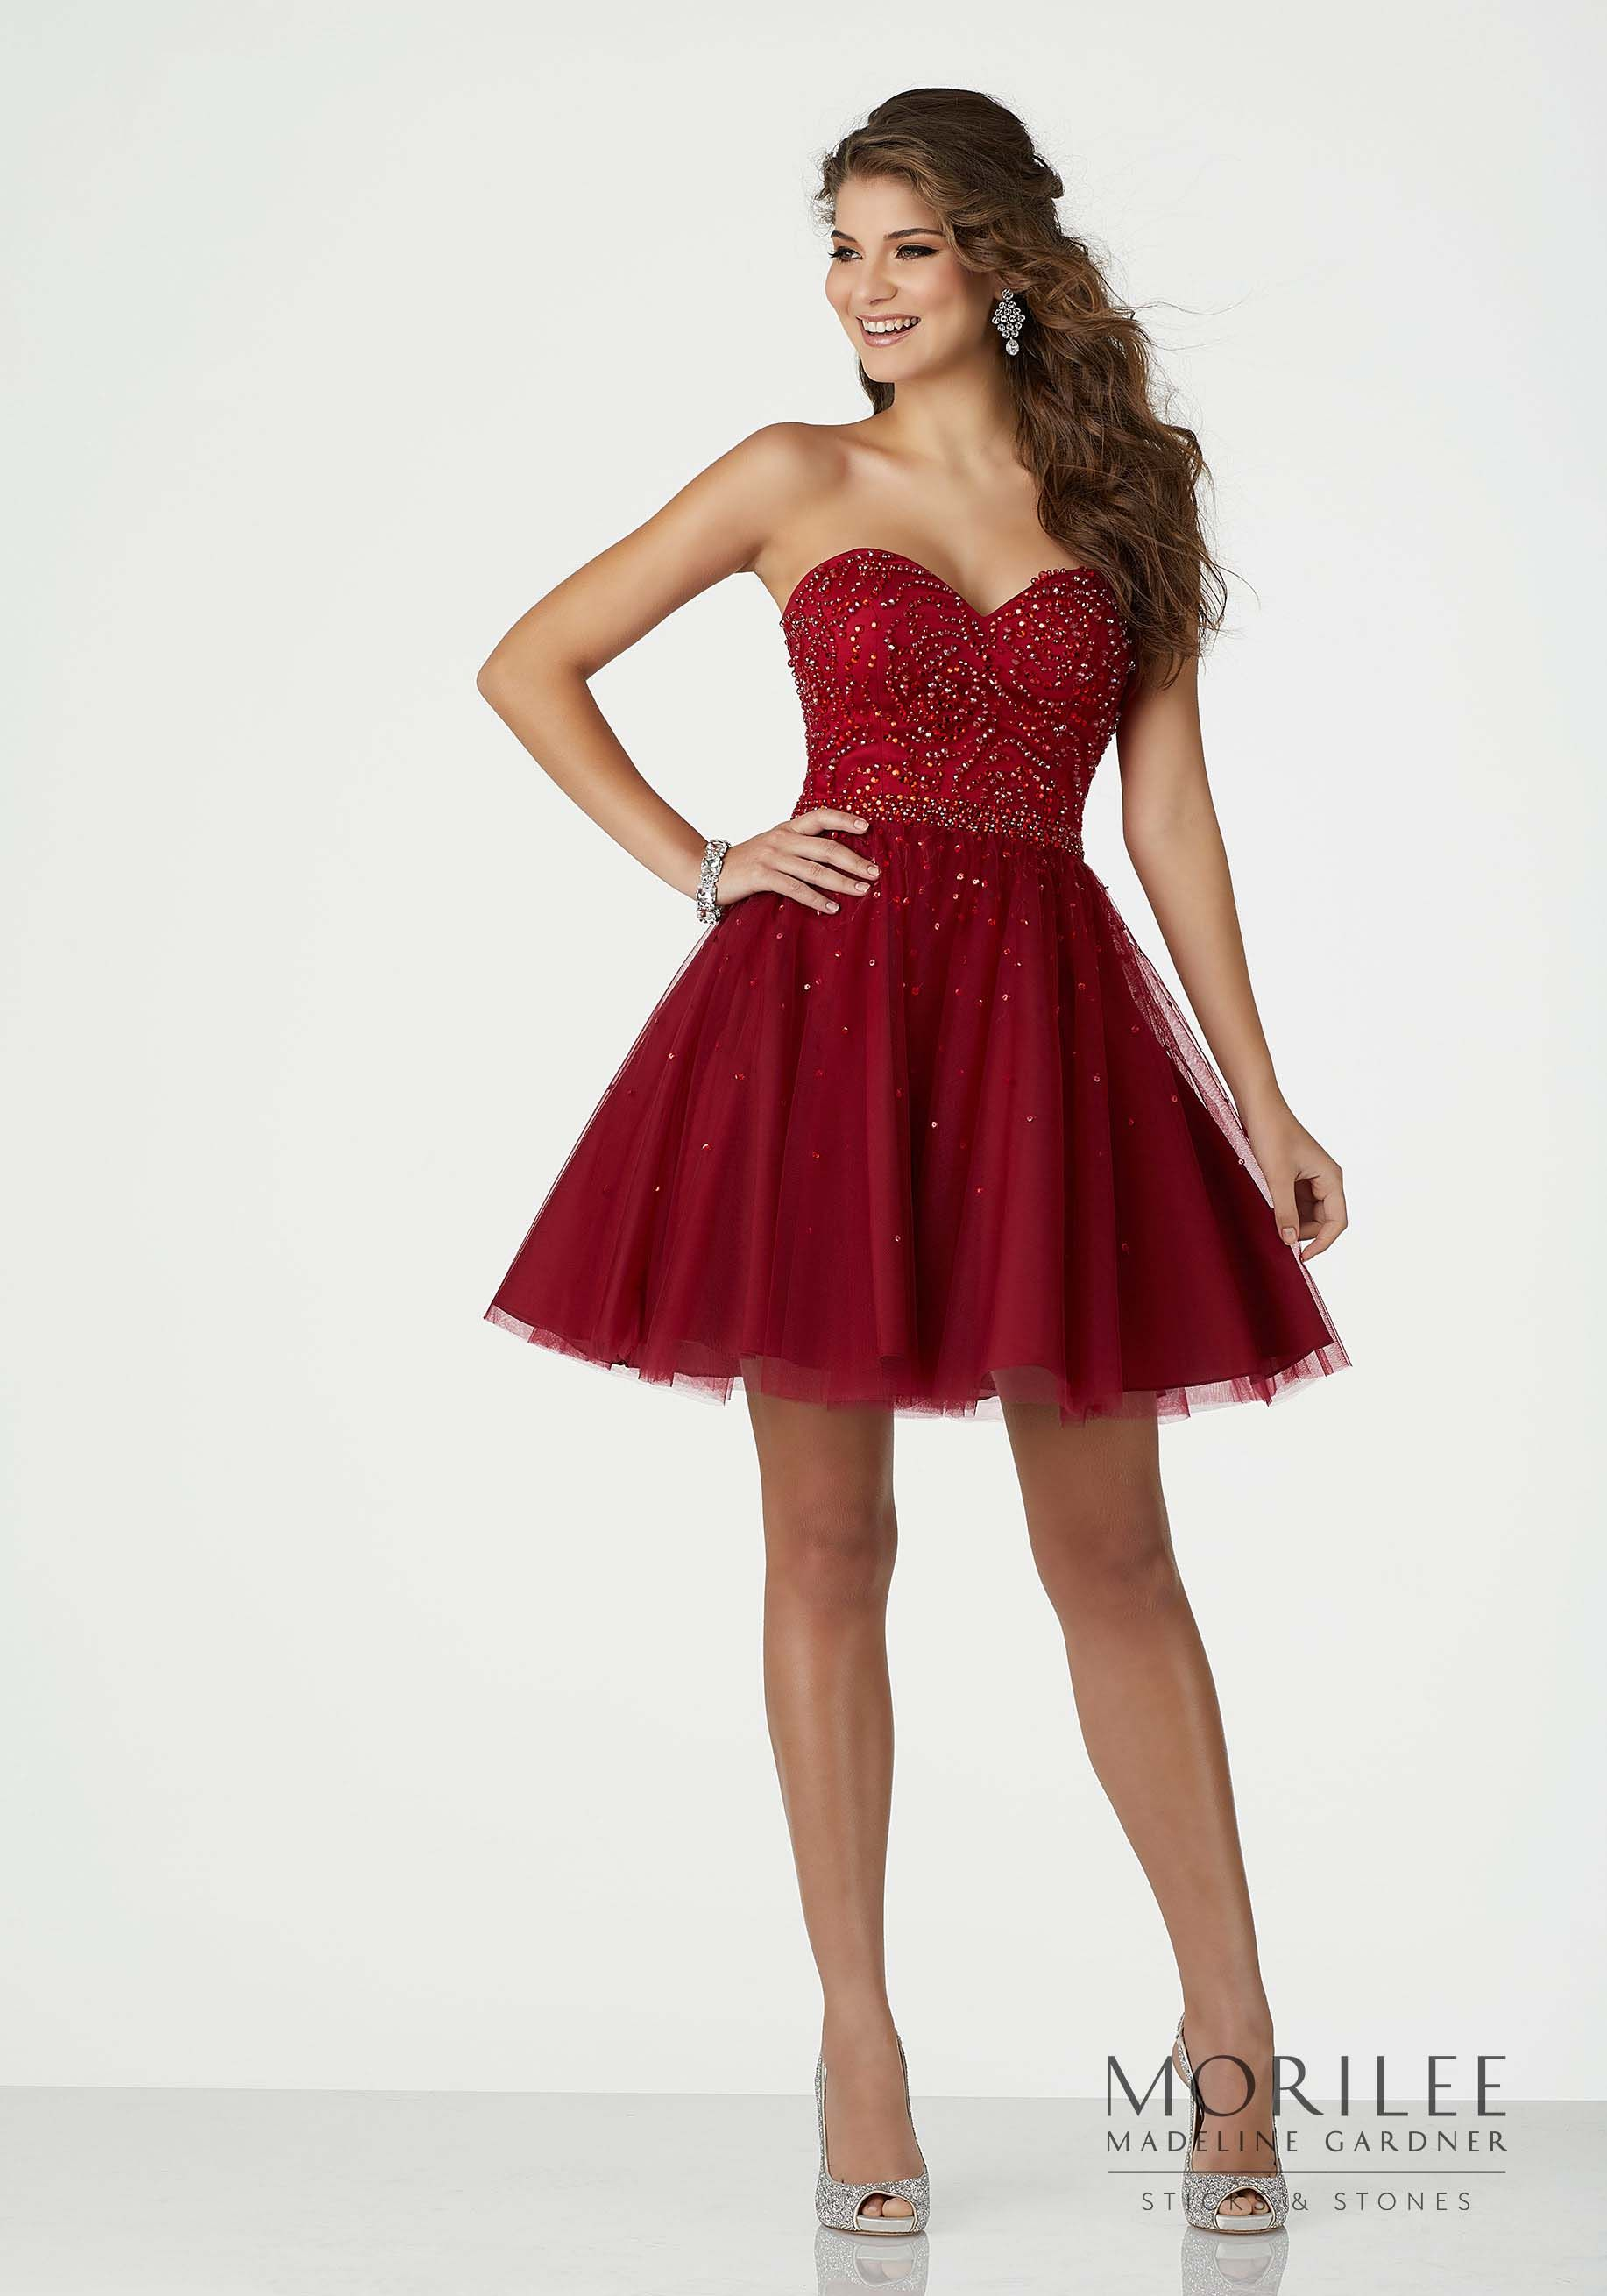 Red strapless short party dress featuring beaded soft net and a